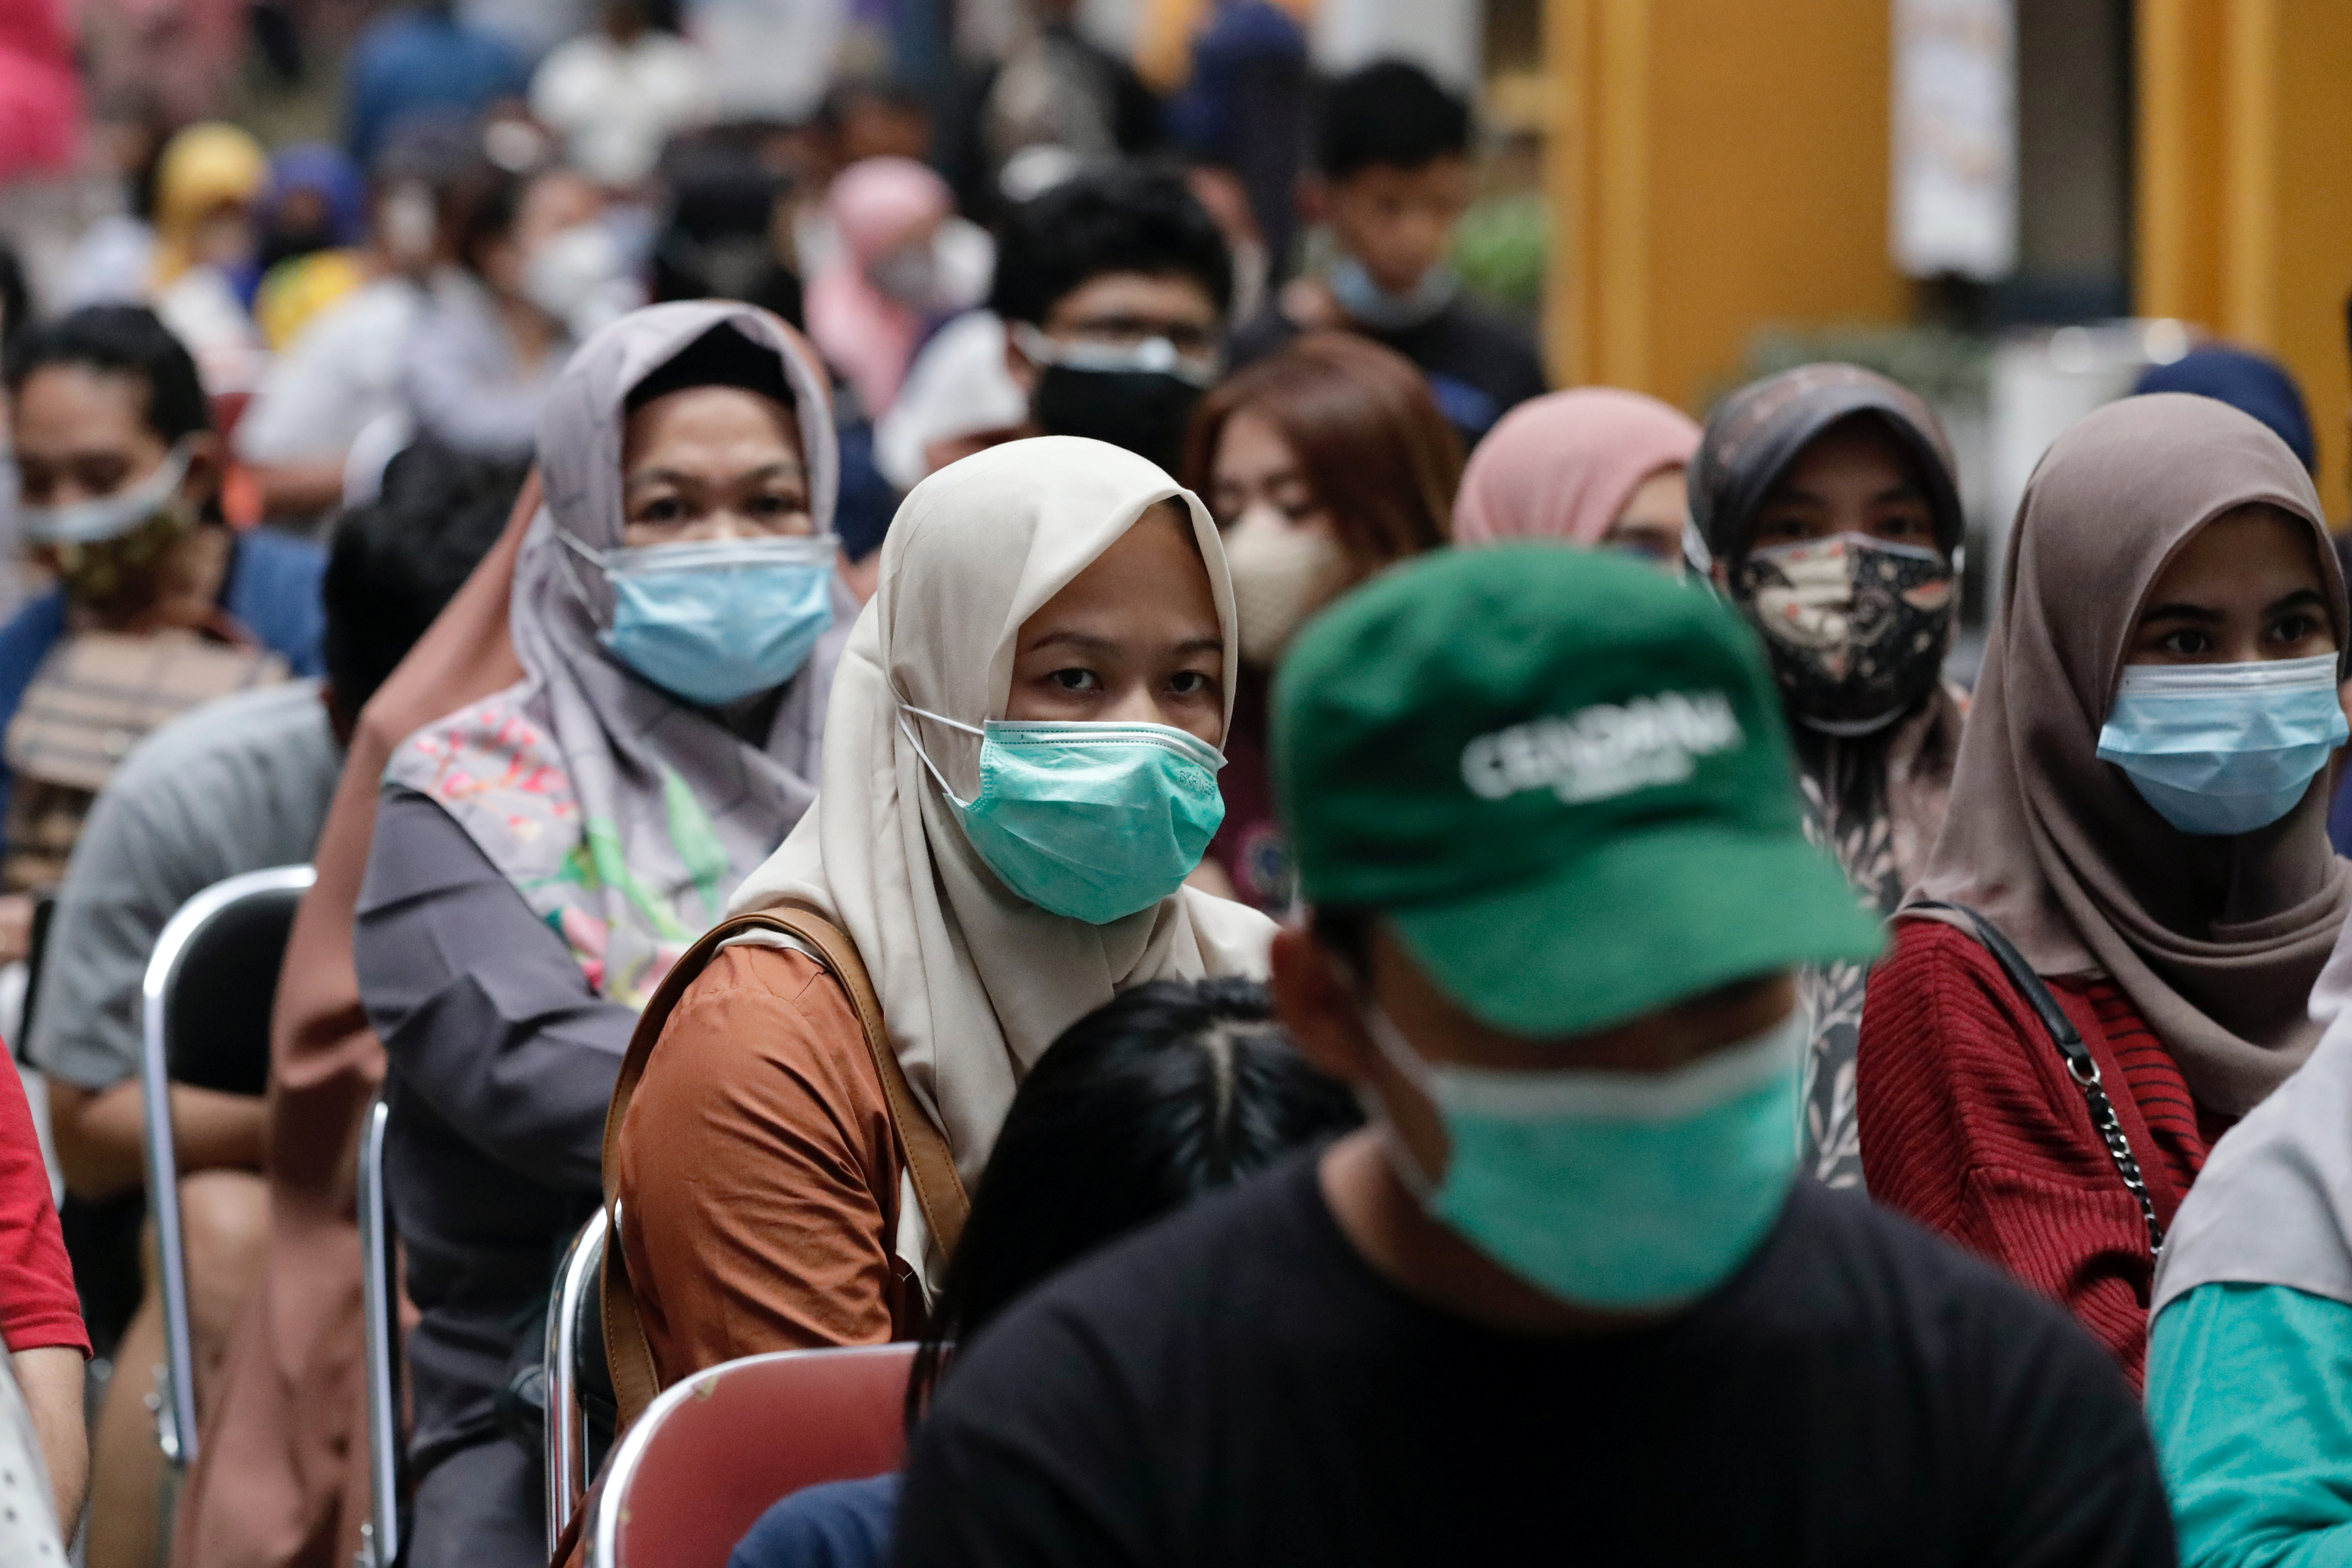 People wearing protective face masks queue up to receive a vaccine dose against the coronavirus disease (COVID-19)  during a mass vaccination program at a shopping mall in Jakarta, Indonesia, August 31, 2021. REUTERS/Ajeng Dinar Ulfiana